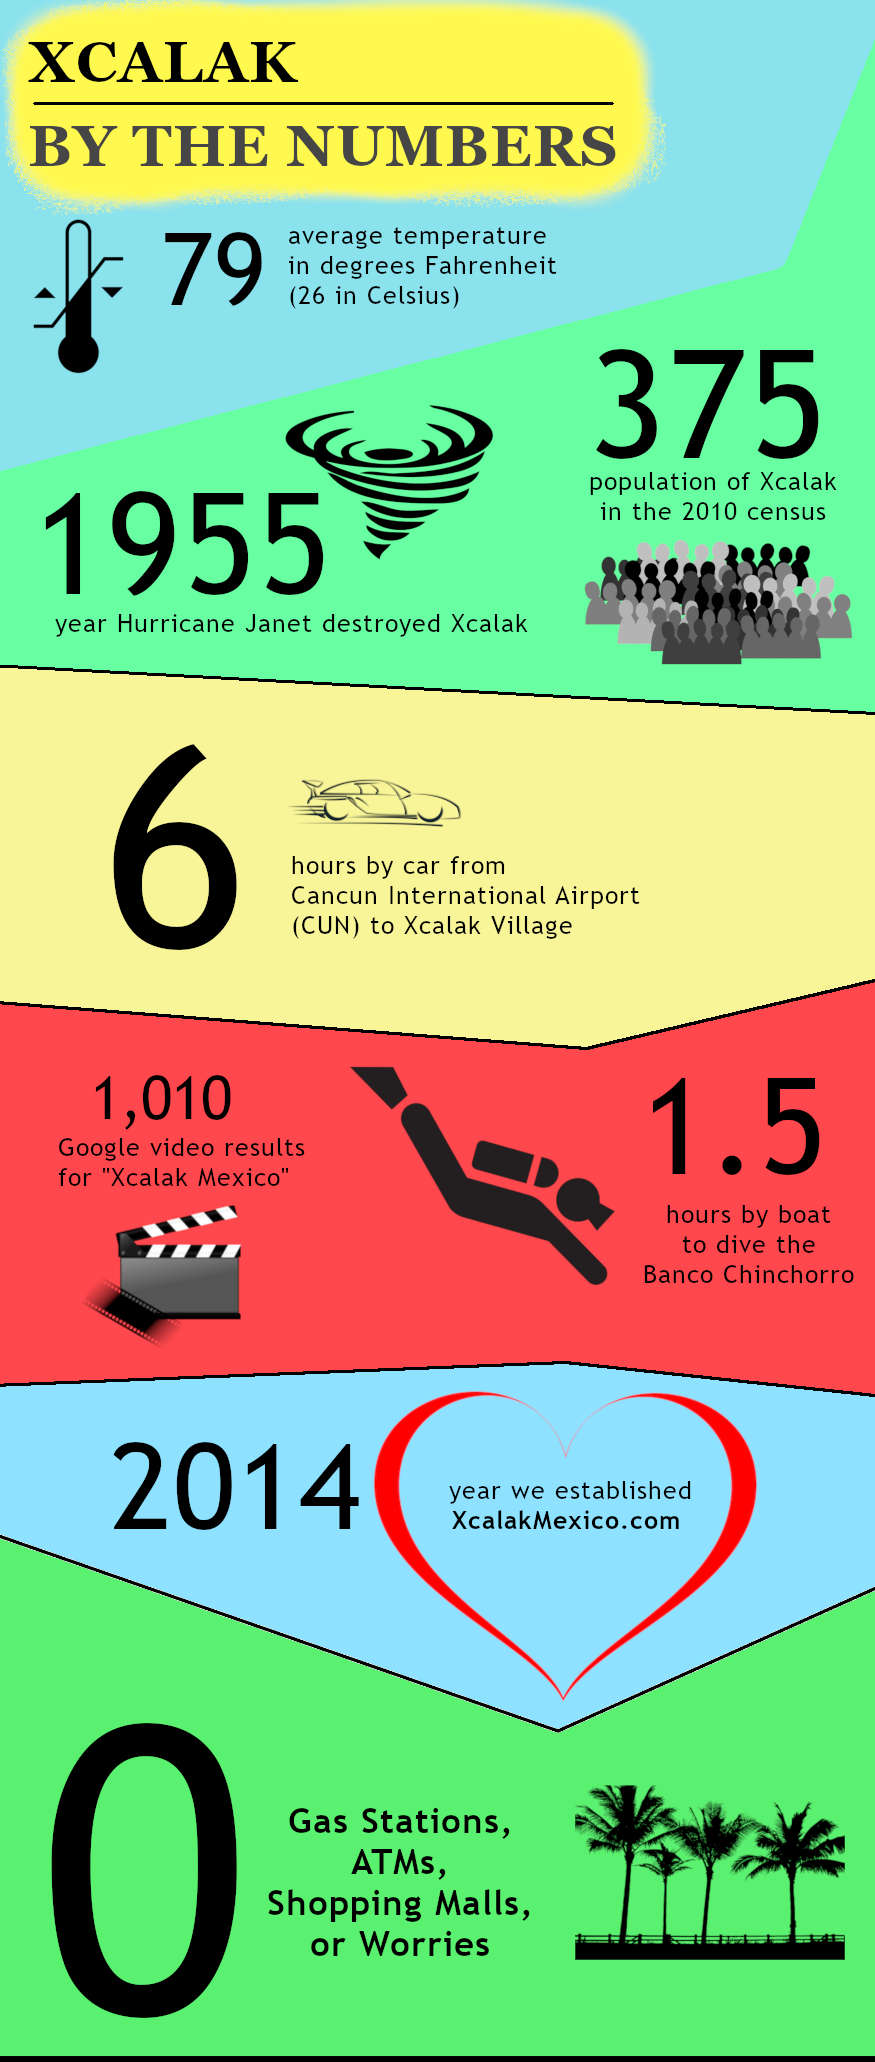 Xcalak by the Numbers Infographic